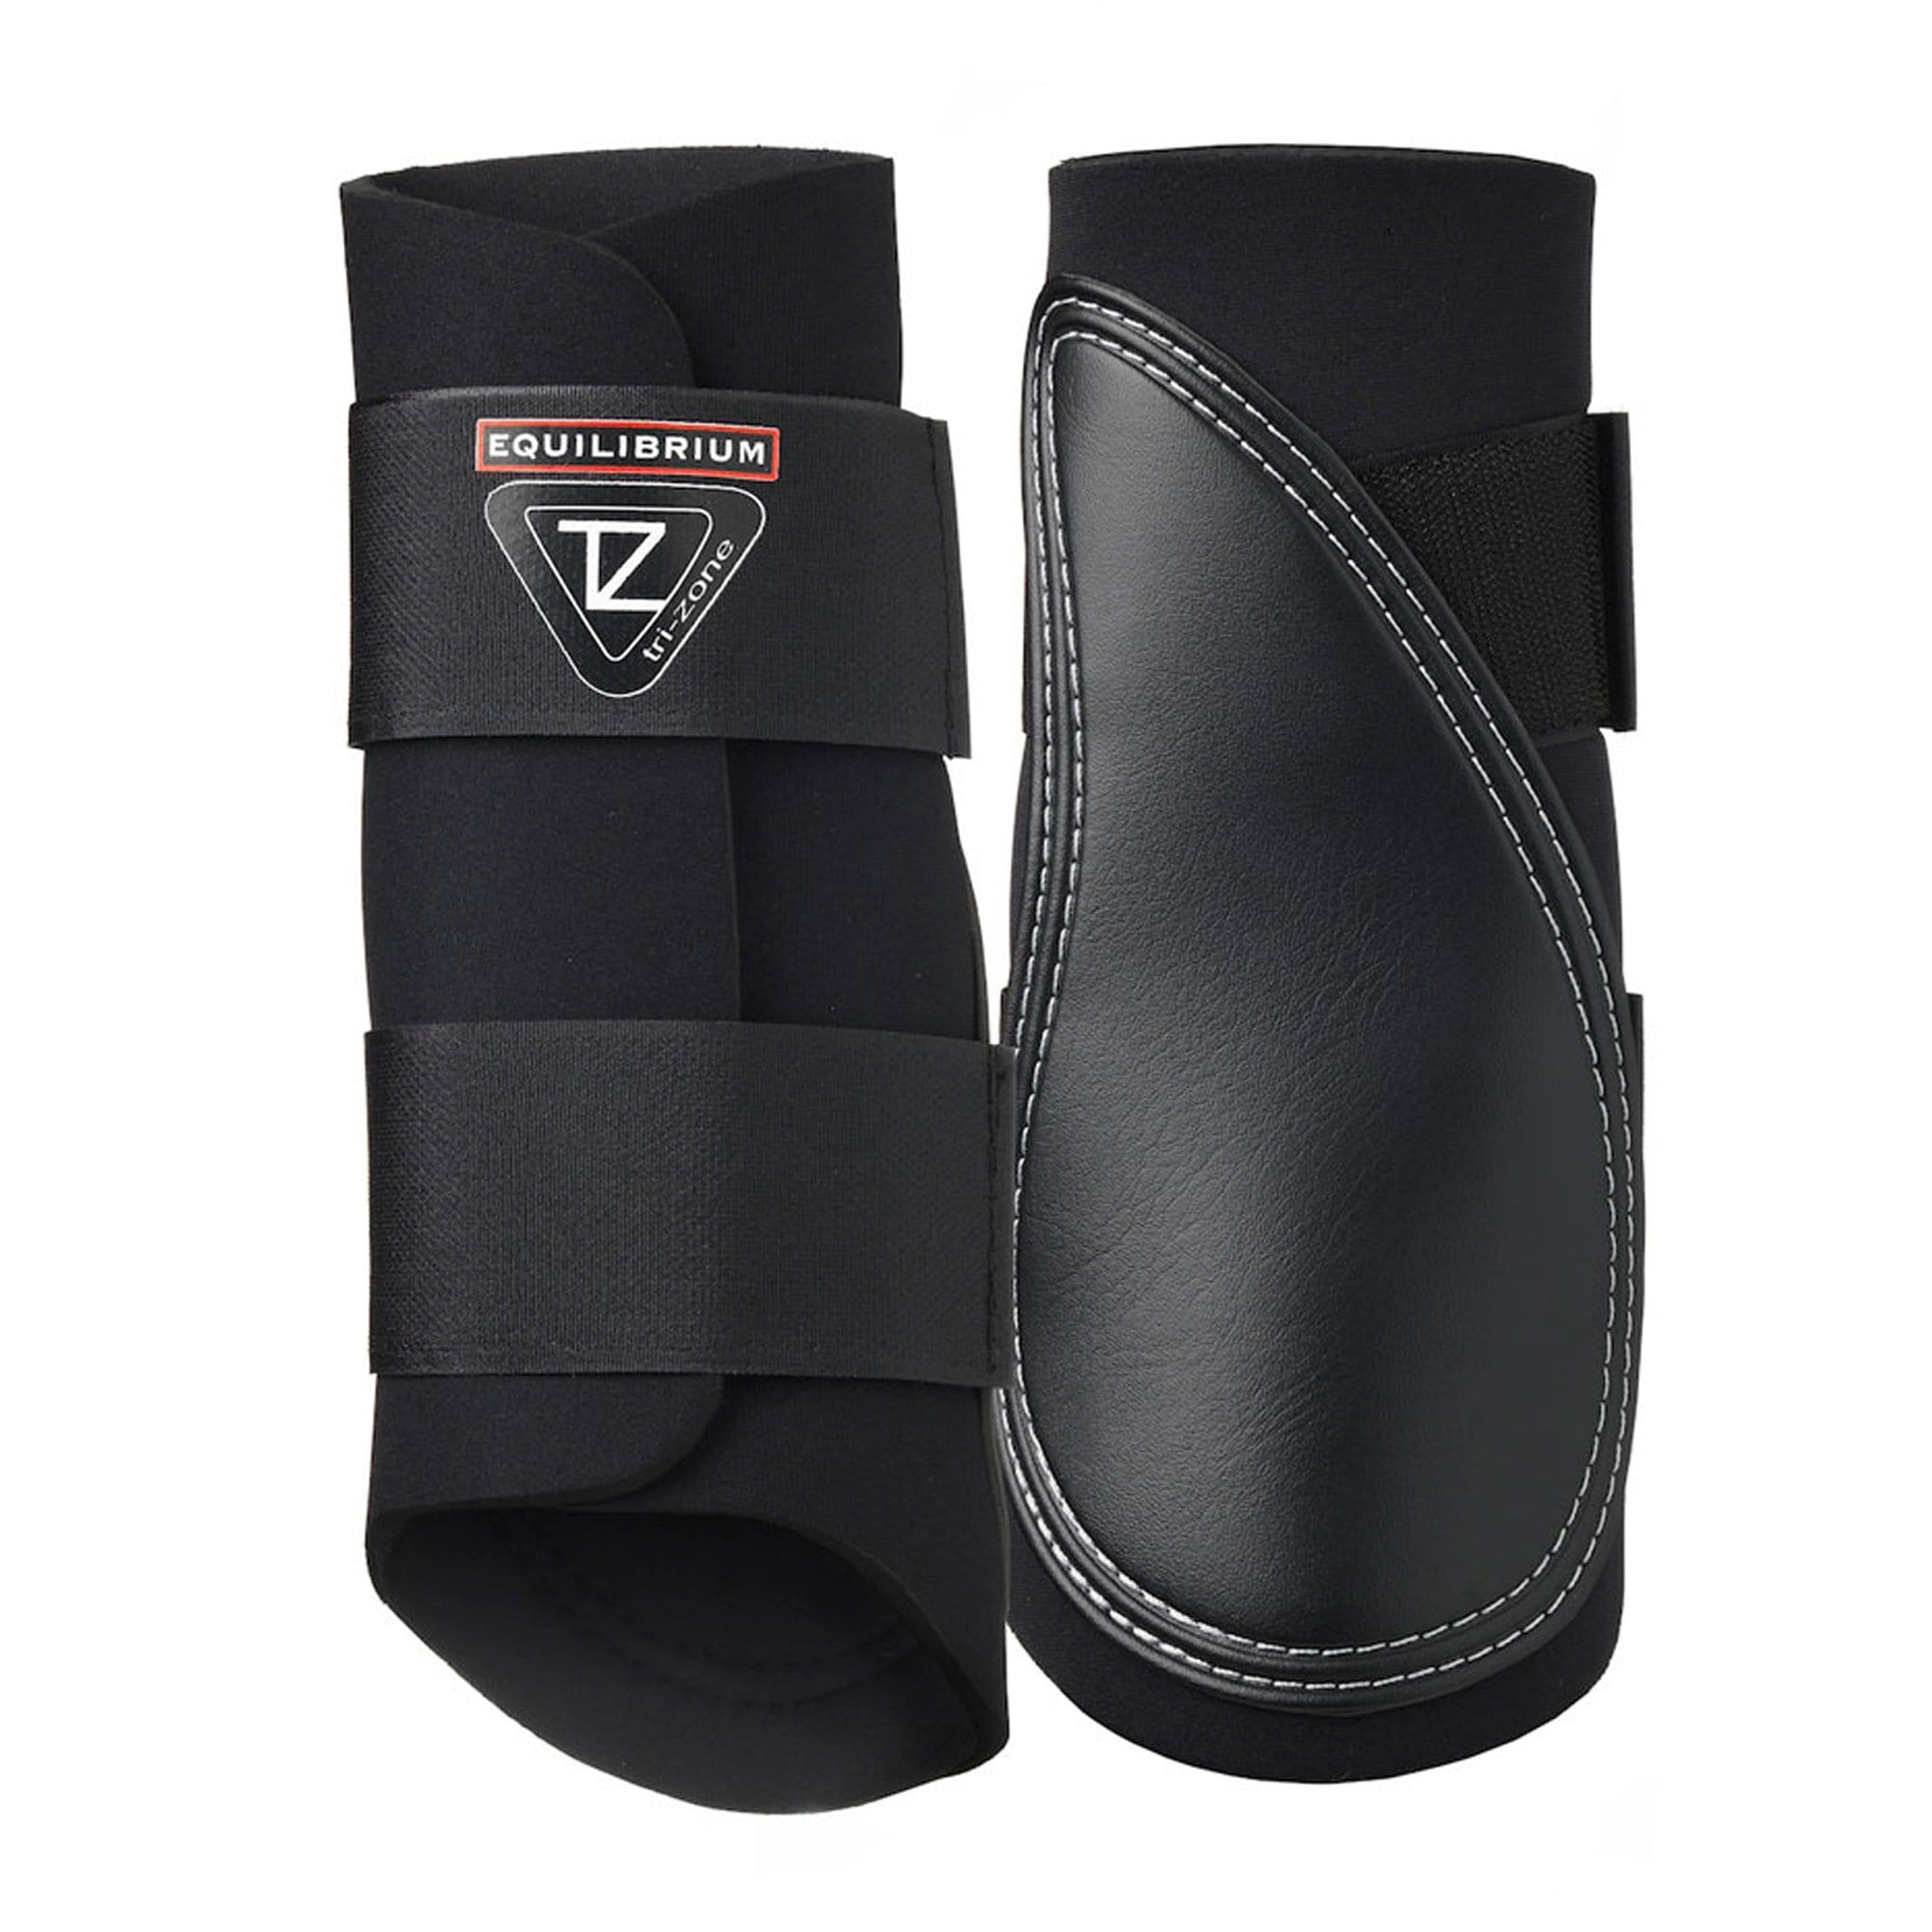 Equilibrium Tri Zone Brushing Boots in Black